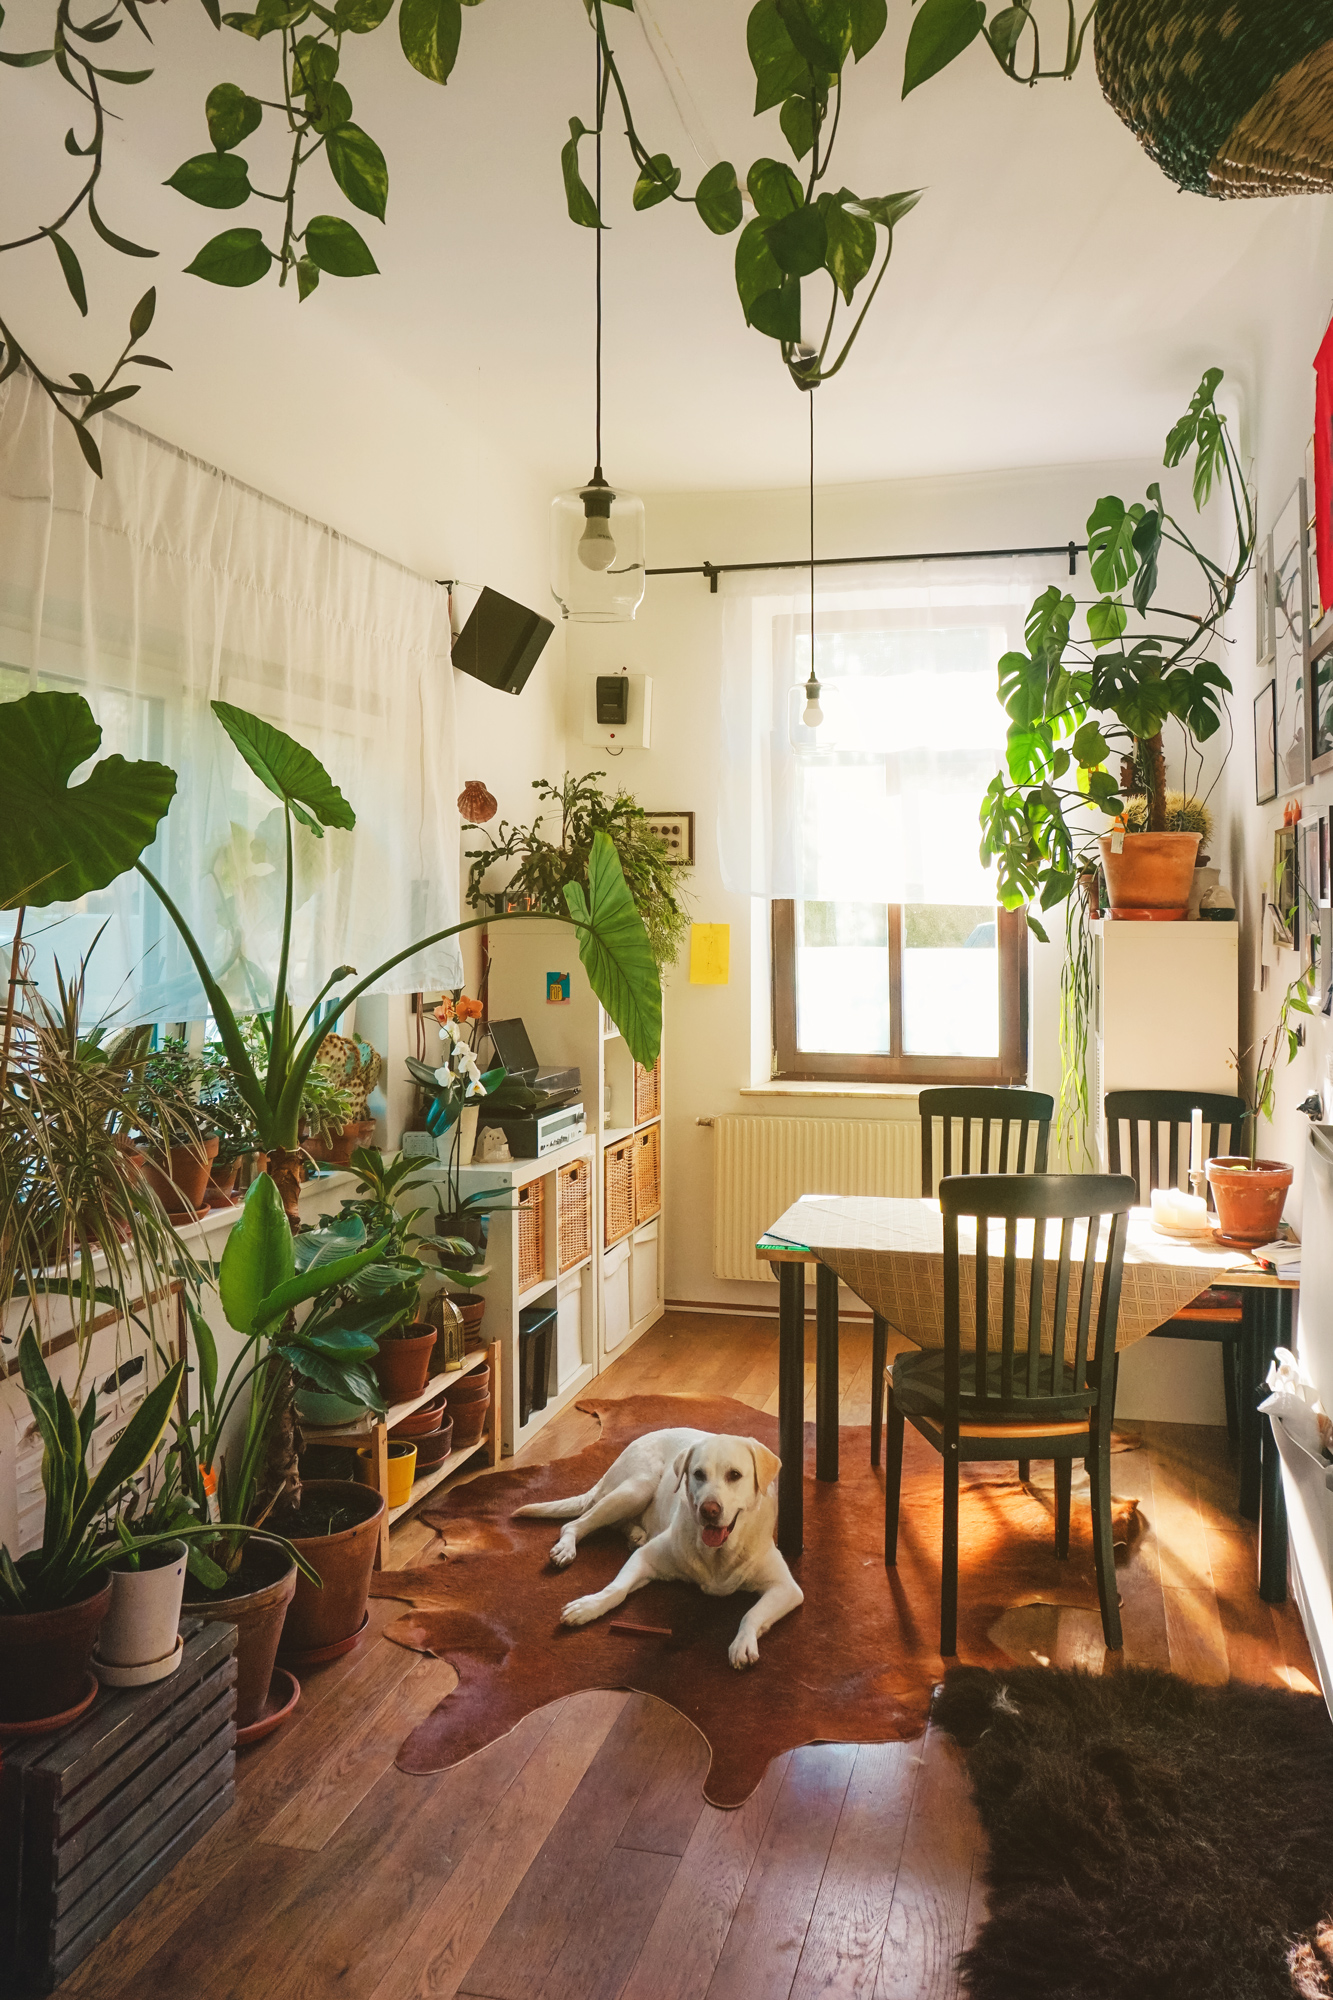 Cozy summer room with lots of plants